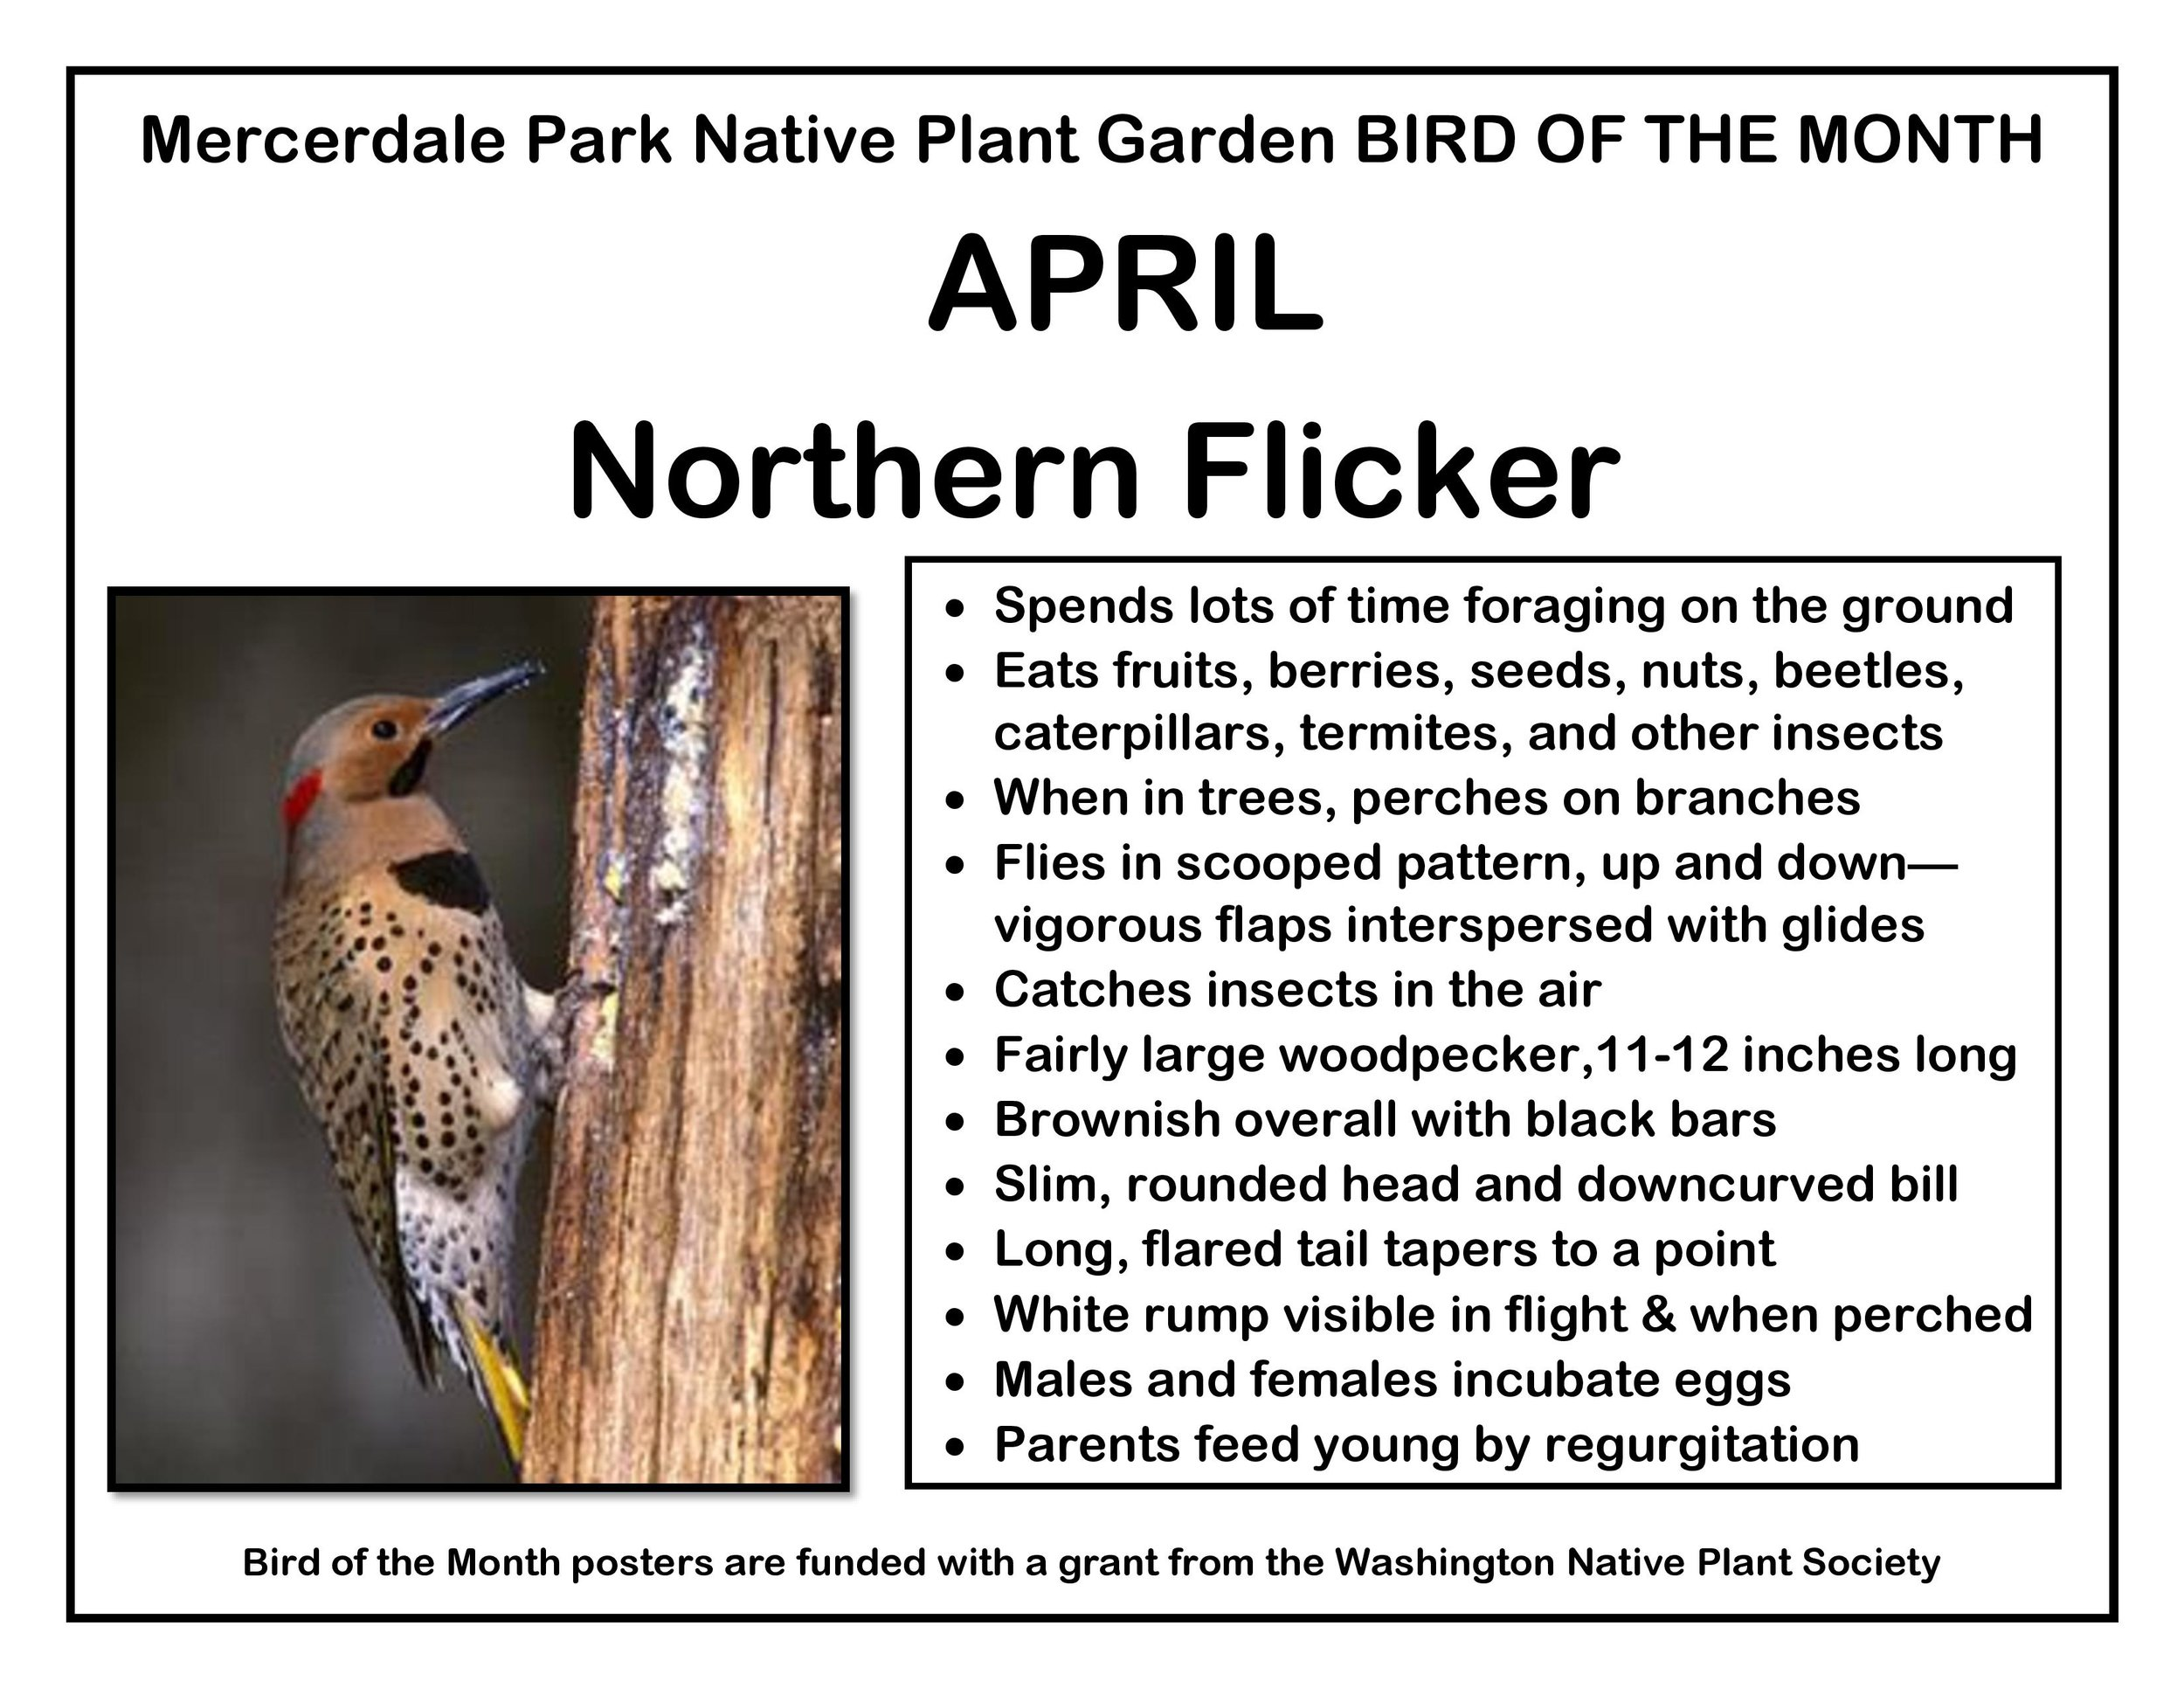 p BIRD OF THE MONTH 4 April Northern Flicker v2-page-001.jpg